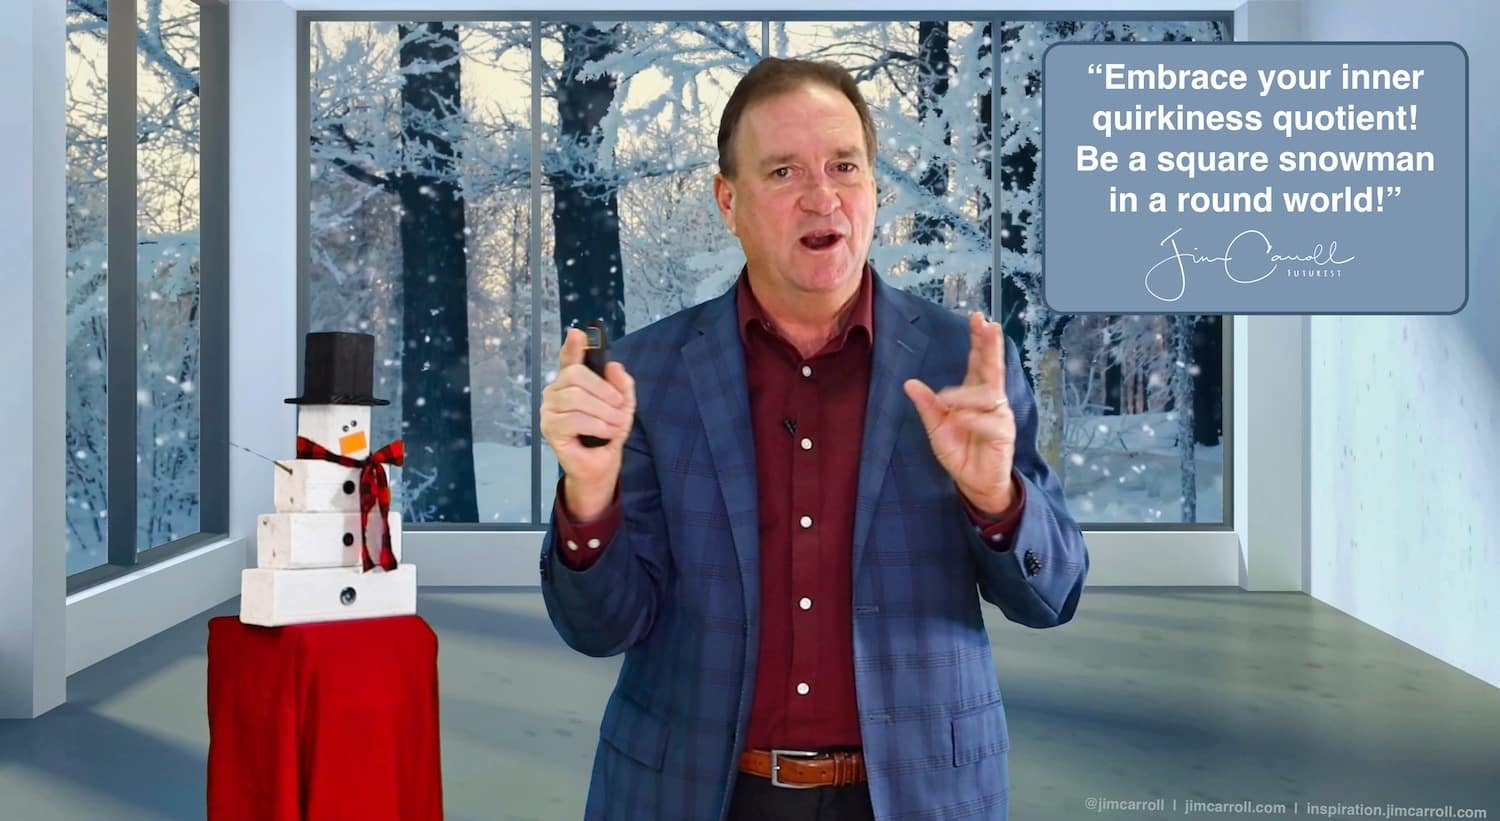 """Daily Inspiration: """"Embrace your inner quirkiness quotient! Be a square snowman in a round world!"""""""